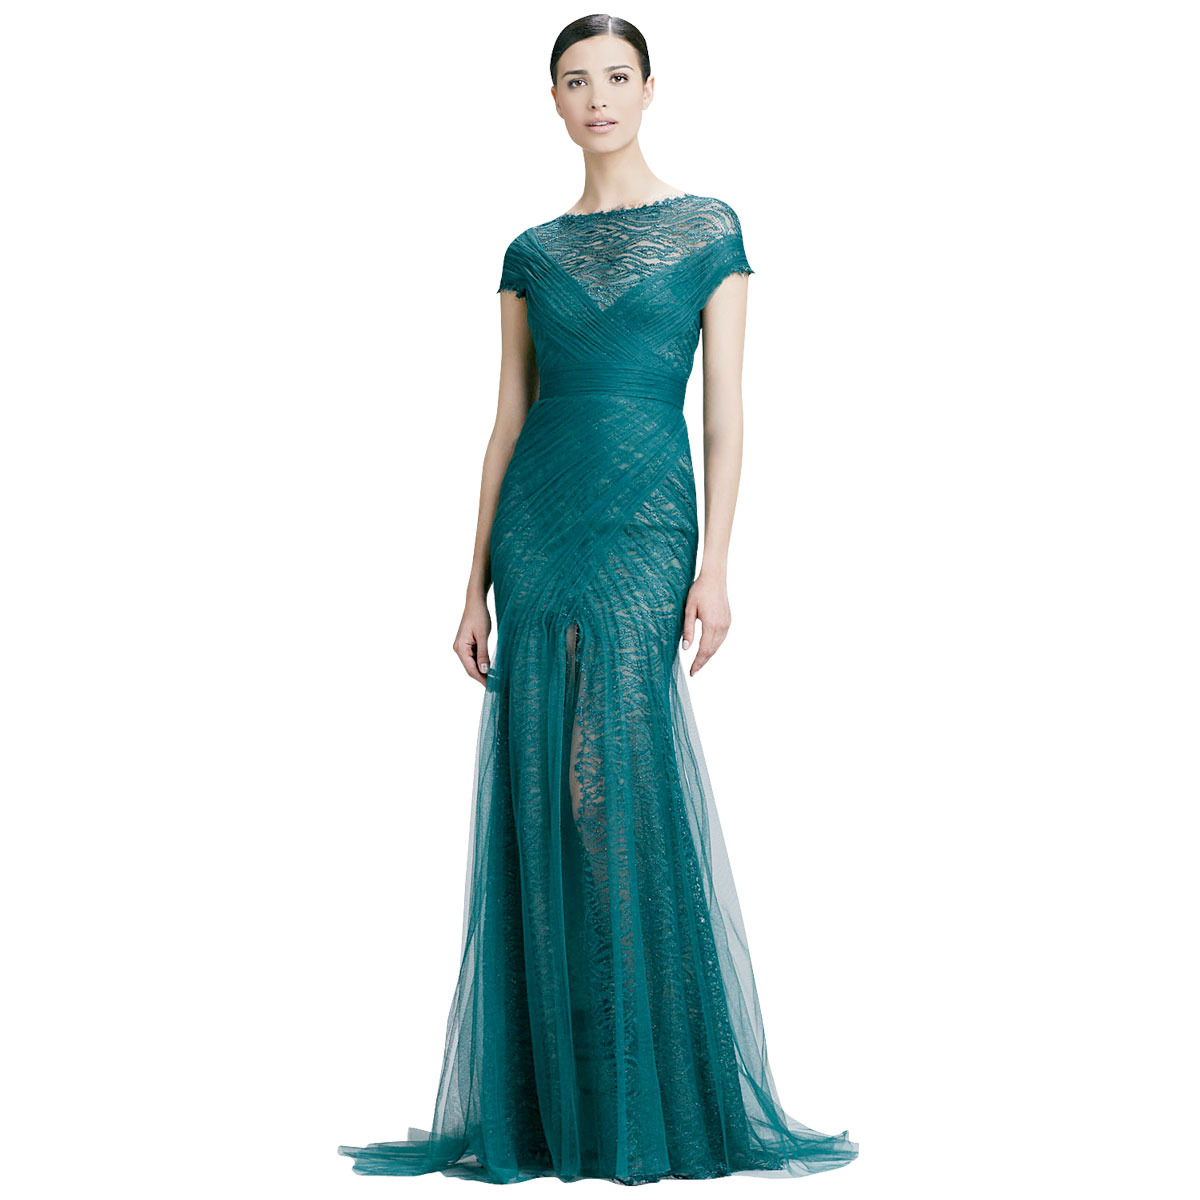 Non Traditional Bridesmaid Dresses For Your Summer Wedding: - Forty-five Nontraditional Wedding Dresses